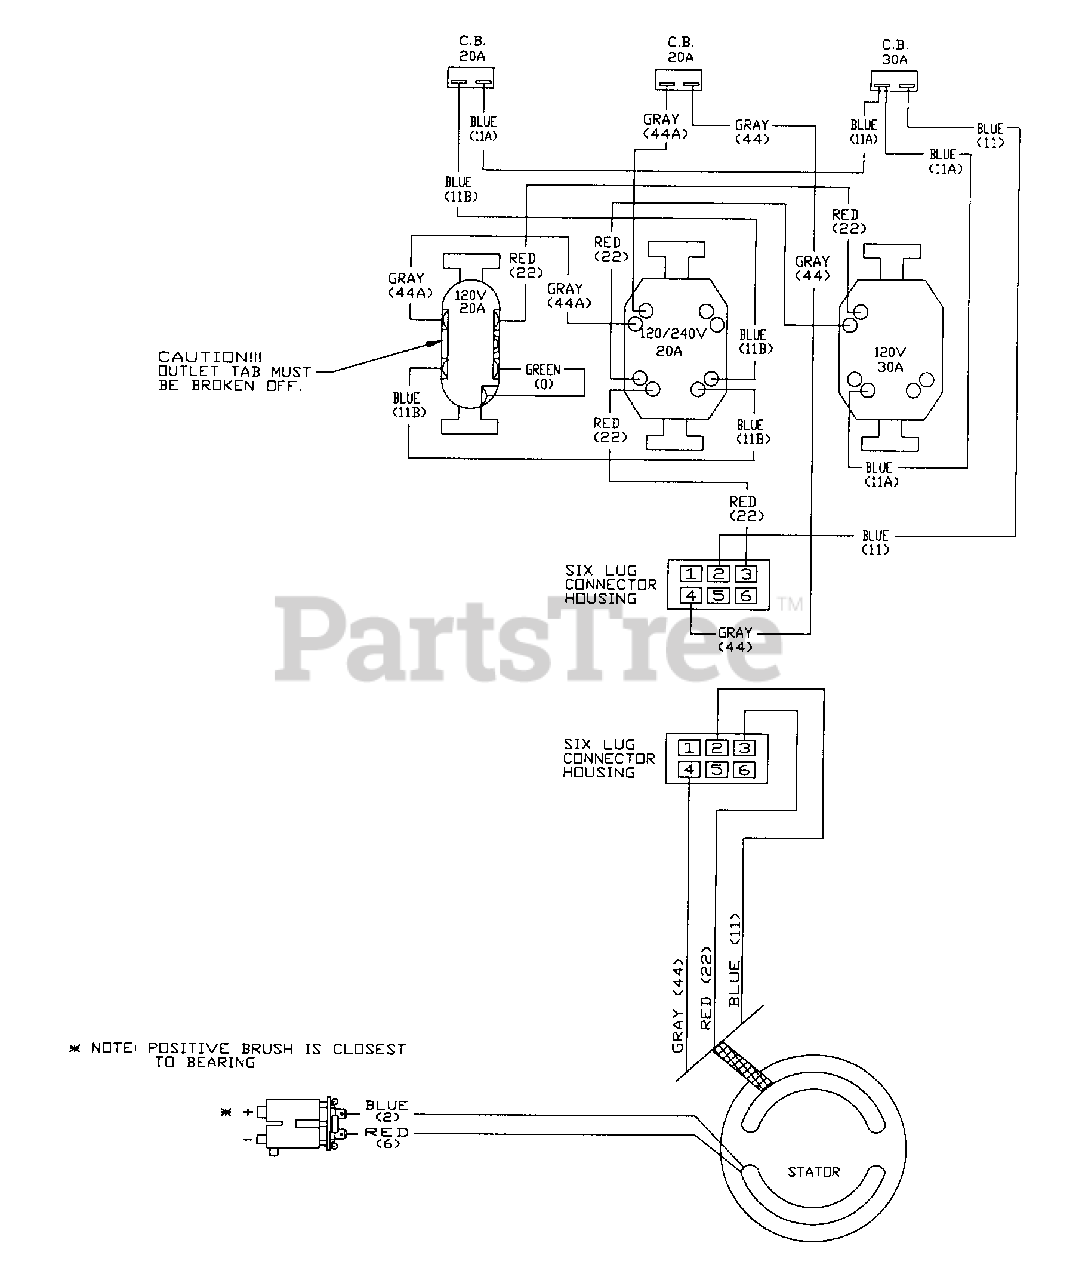 briggs and stratton generator wiring diagram portable generator wiring diagram wiring diagram e12  portable generator wiring diagram